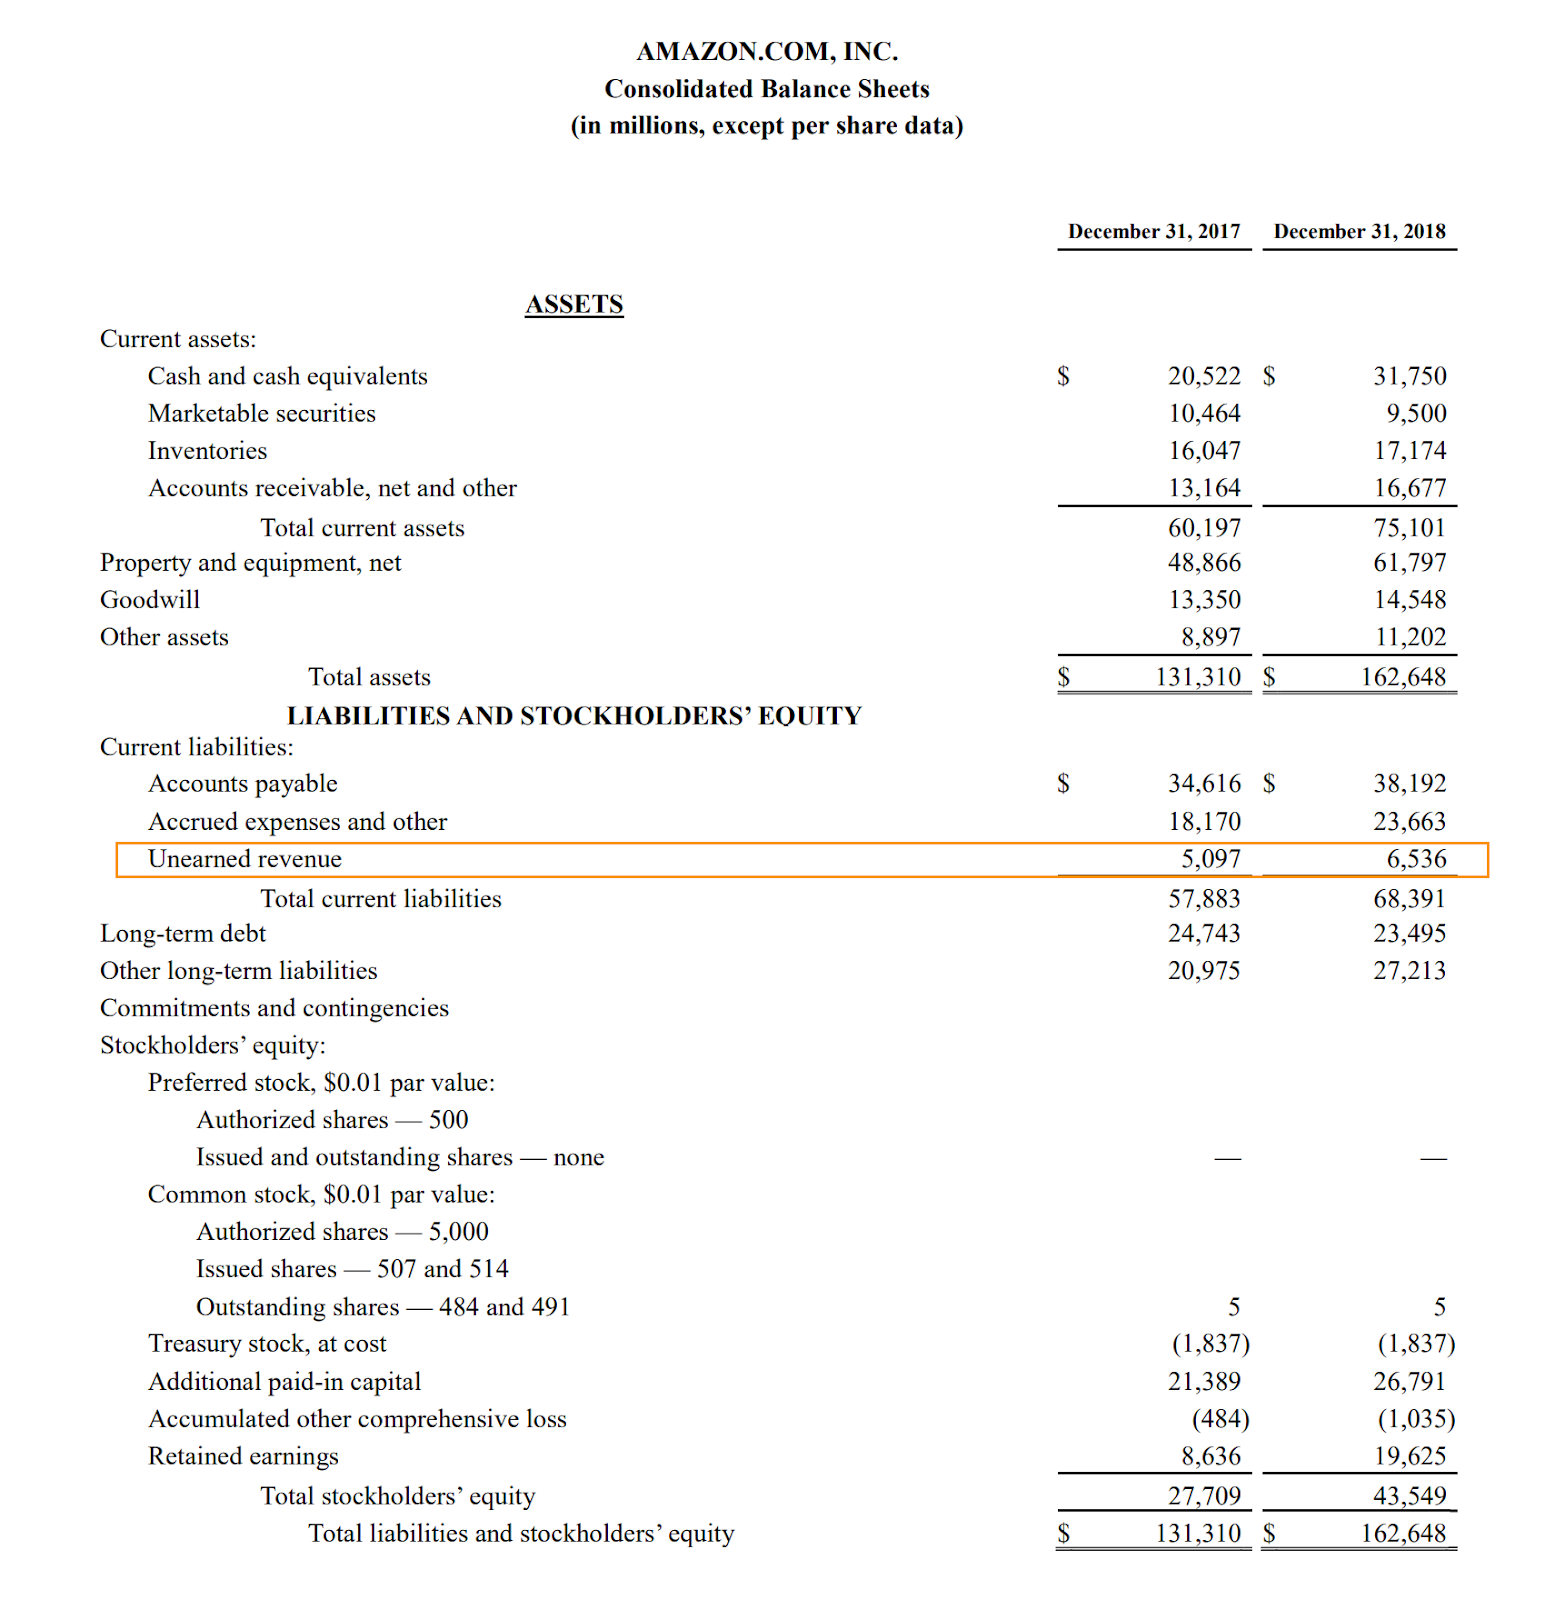 unearned revenue is reported in the financial statements as